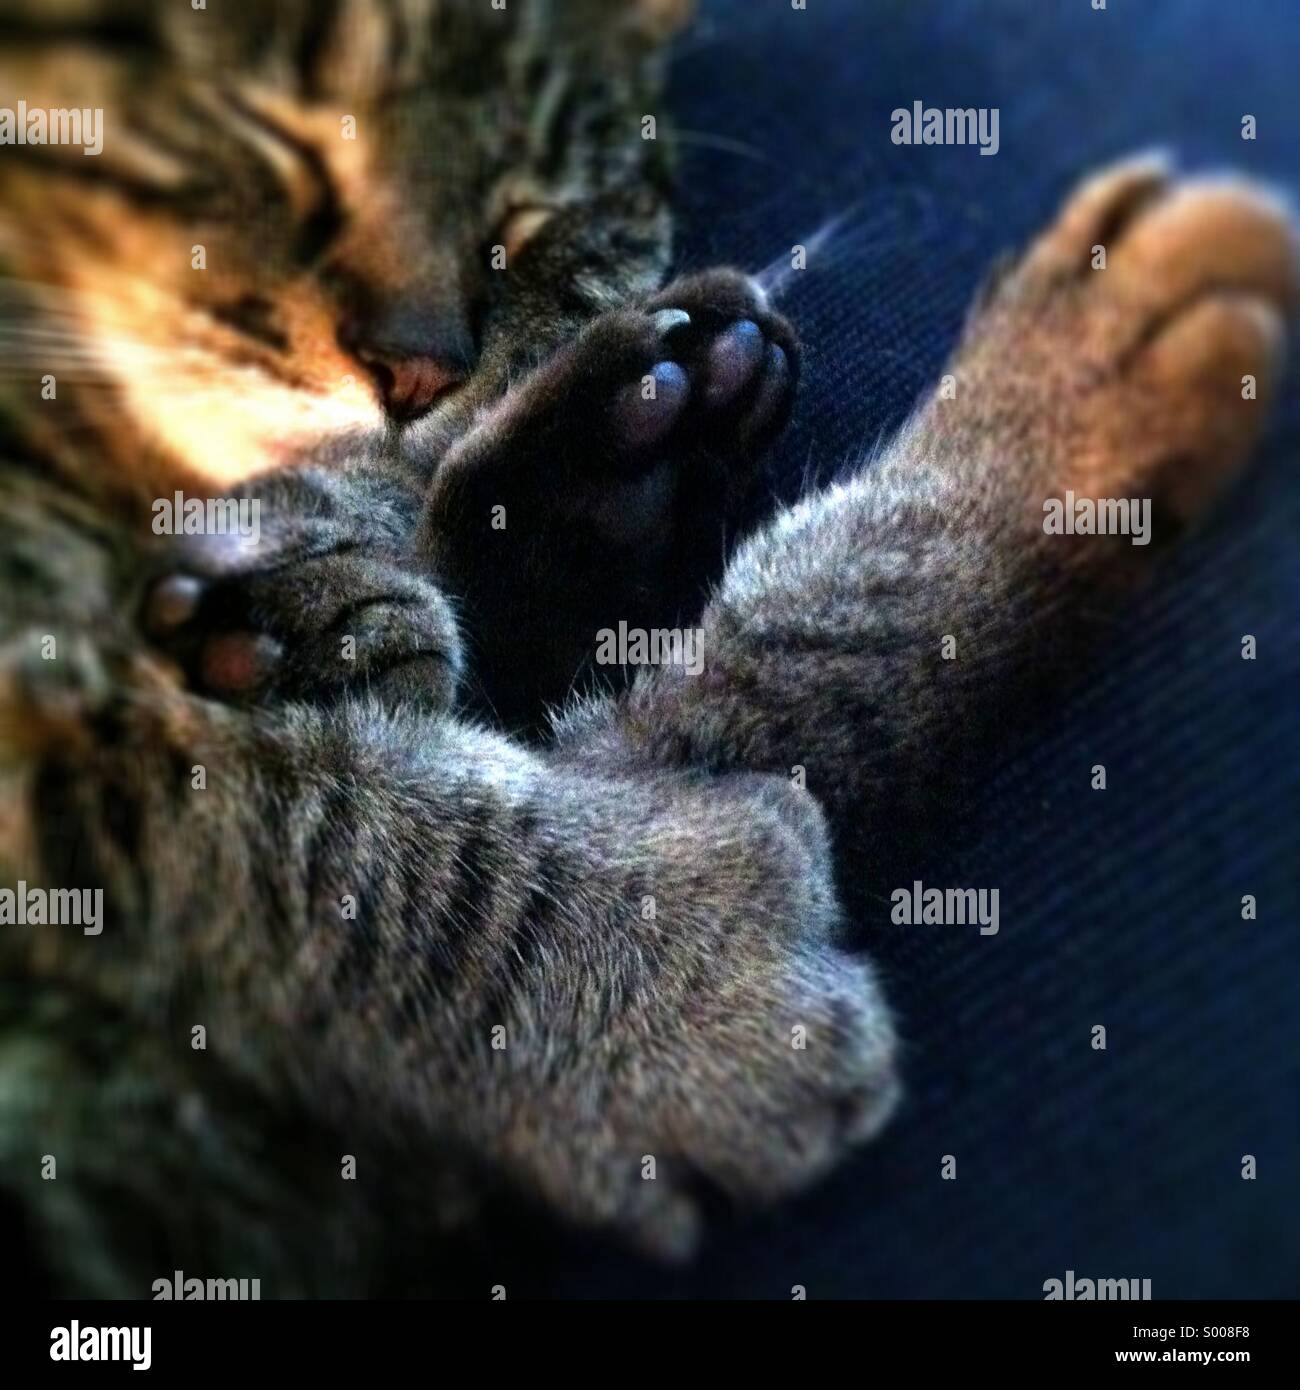 Cat sleeping, focus on paws - Stock Image